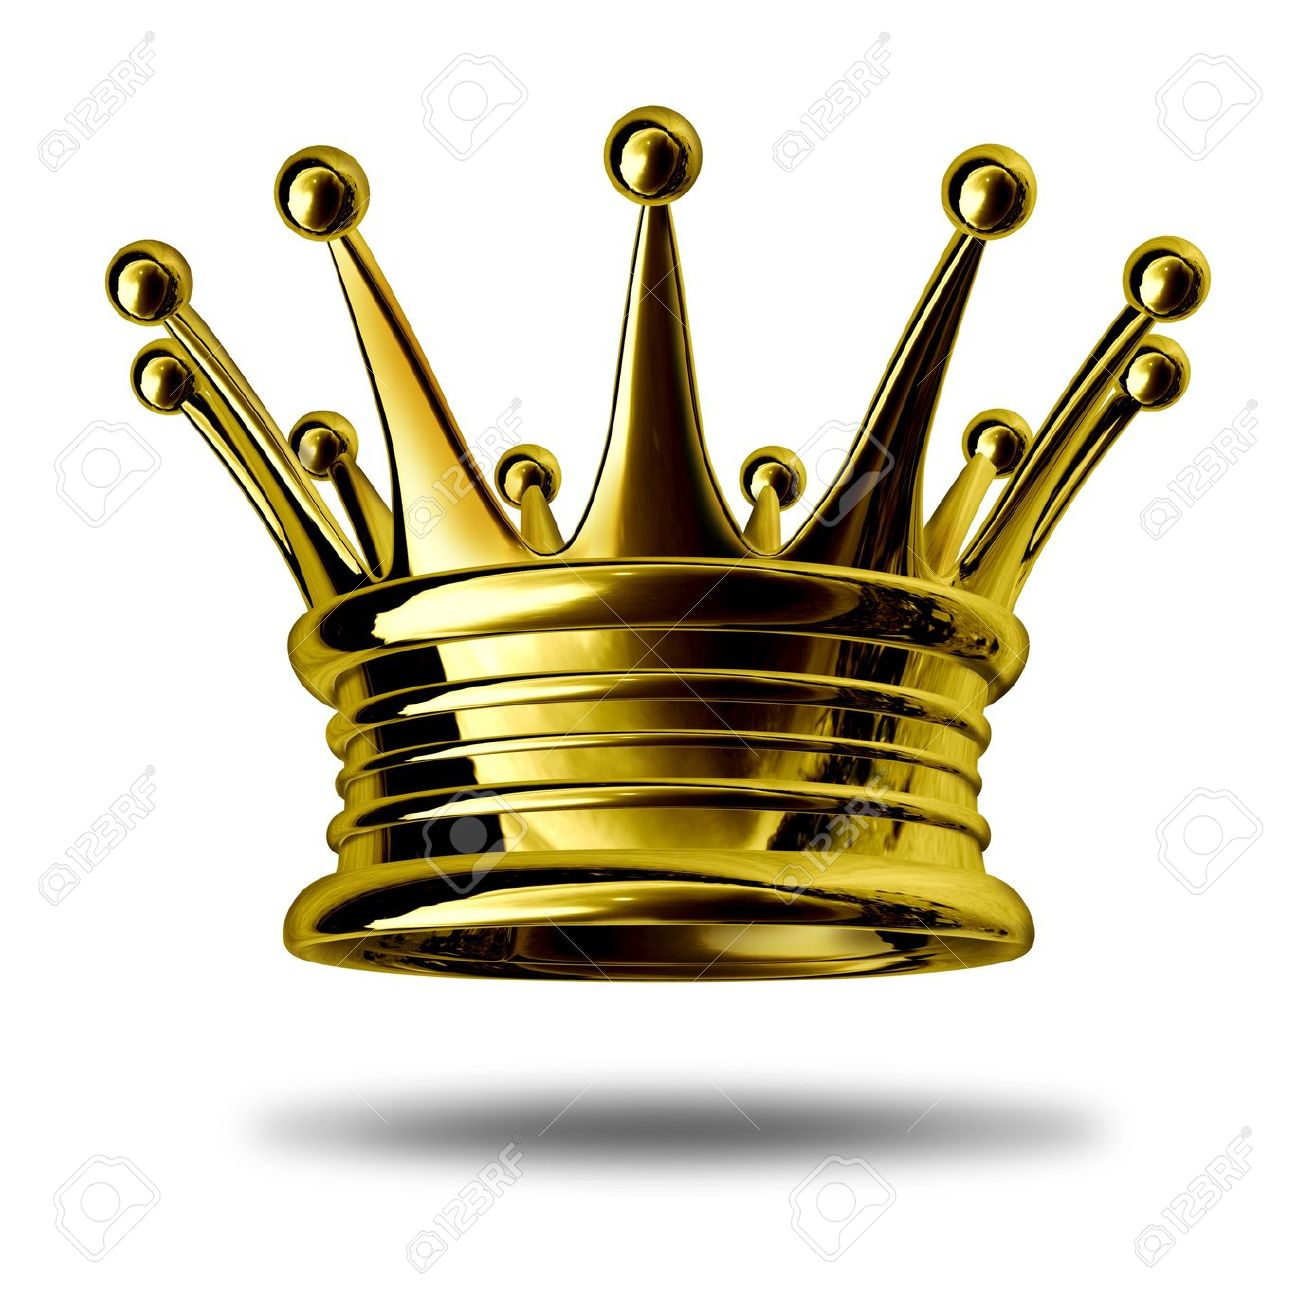 Gold Crown Representing Royalty And Wealth As An Award Symbol.